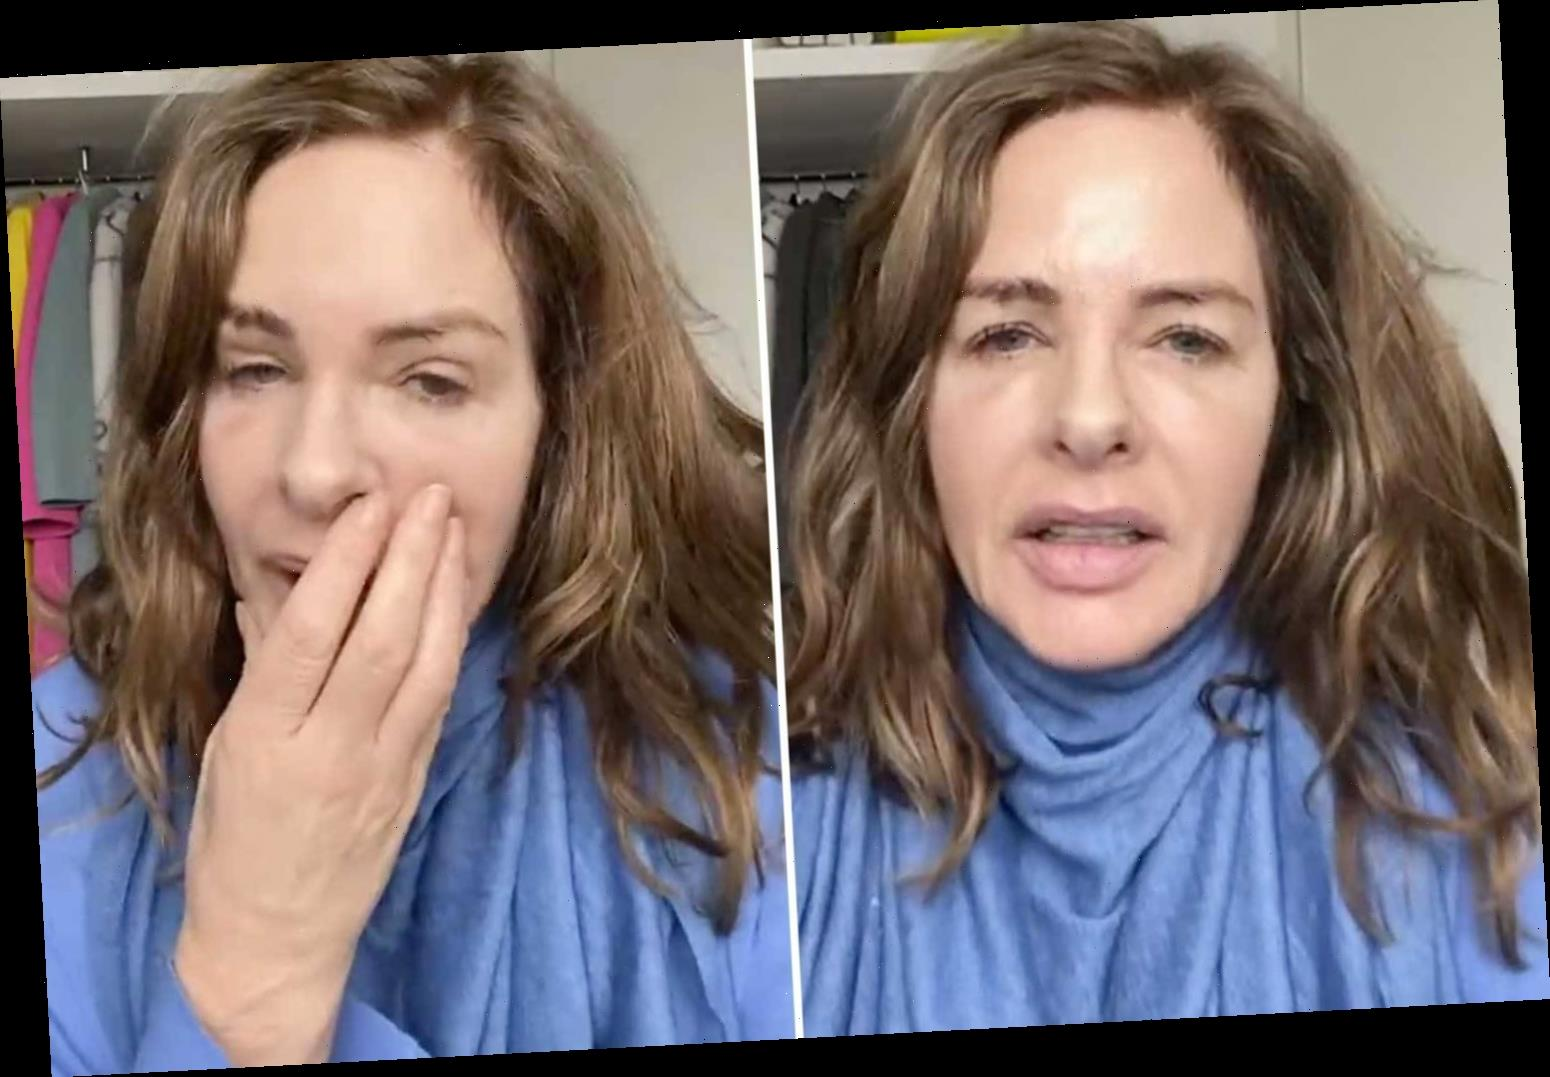 This Morning's Trinny, 56, admits she's got Covid and feels 'horrible' after looking after sick relatives at Christmas